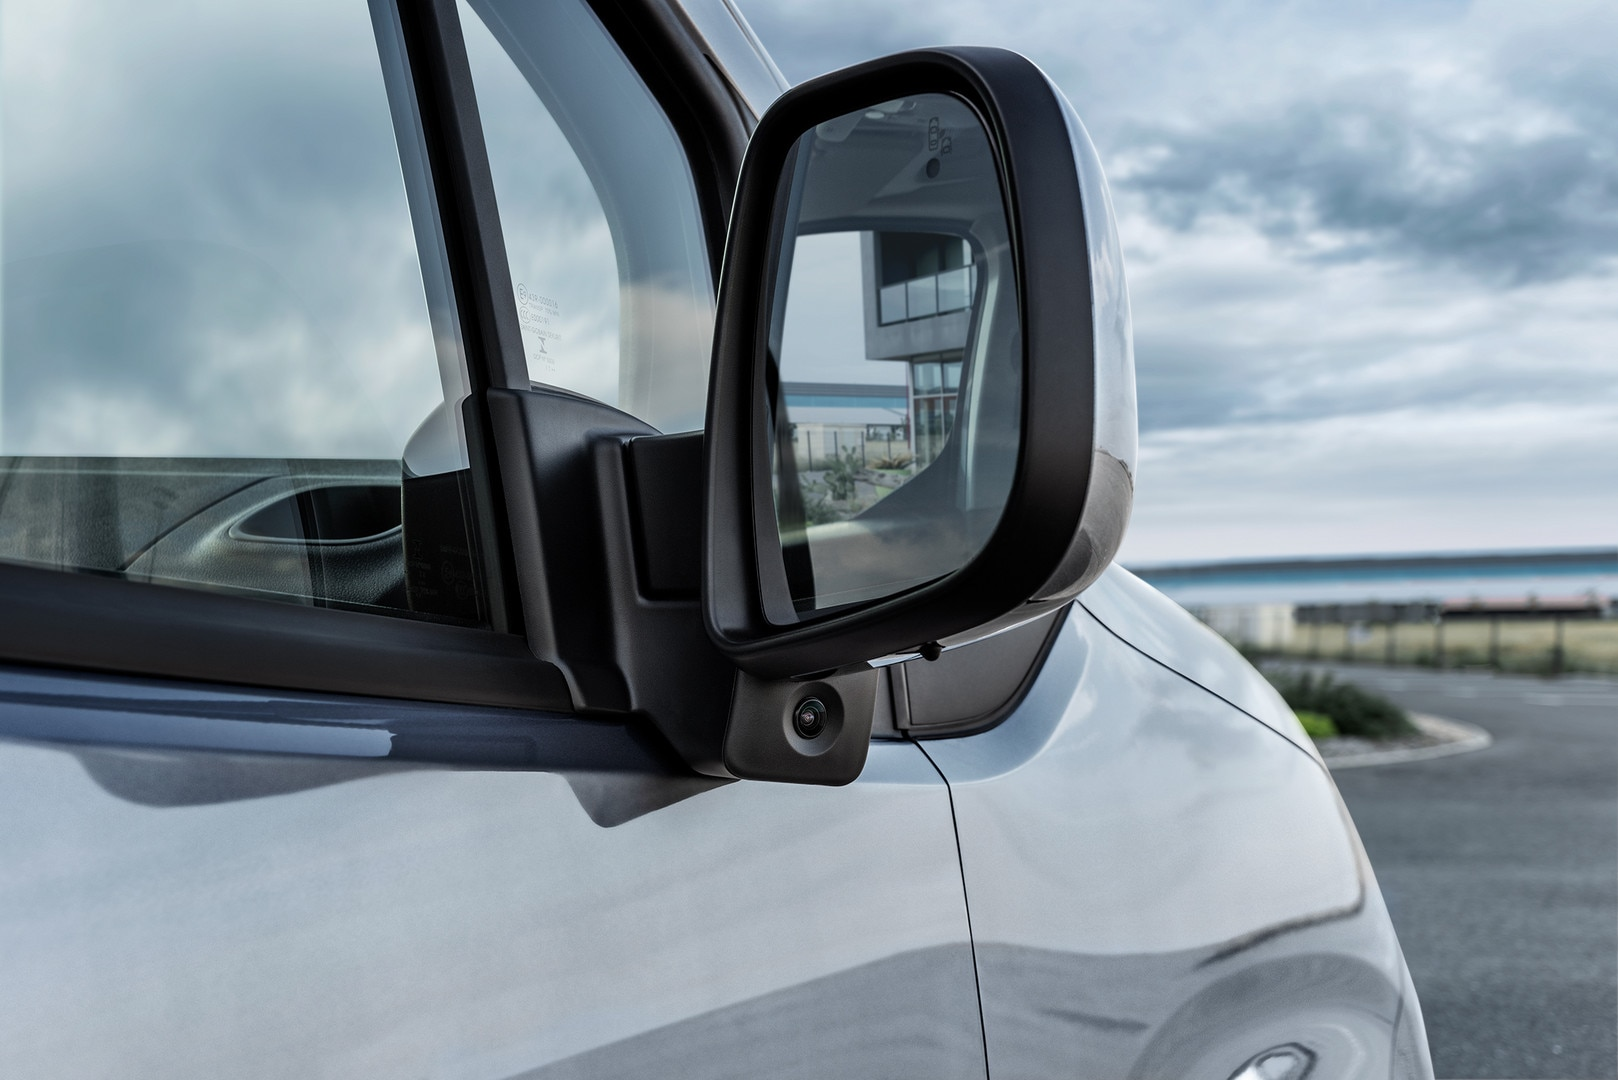 NEW PEUGEOT PARTNER: NEW PEUGEOT PARTNER: Surround Rear Vision with its side camera under the passenger mirror to reduce the blind spot on the passenger side